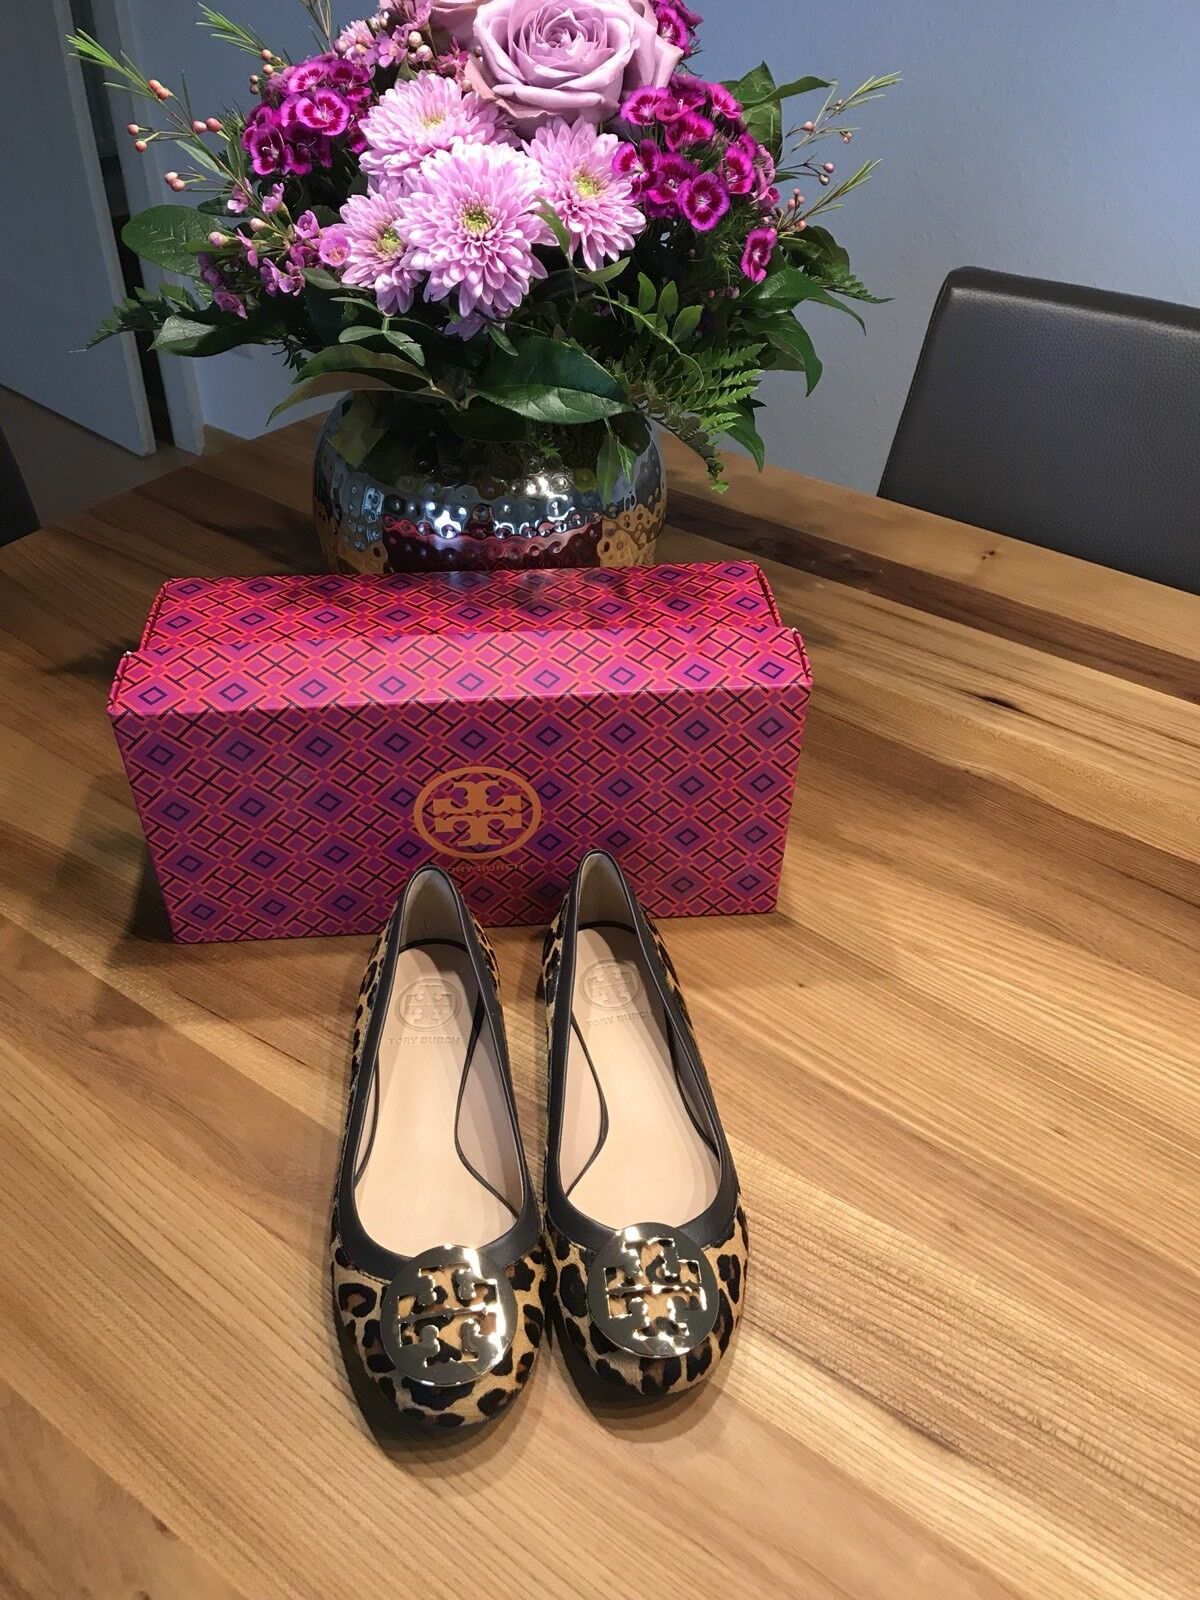 Tory Burch Original Fell-Leder Ballerina Leopard in Gr. 36, Neu